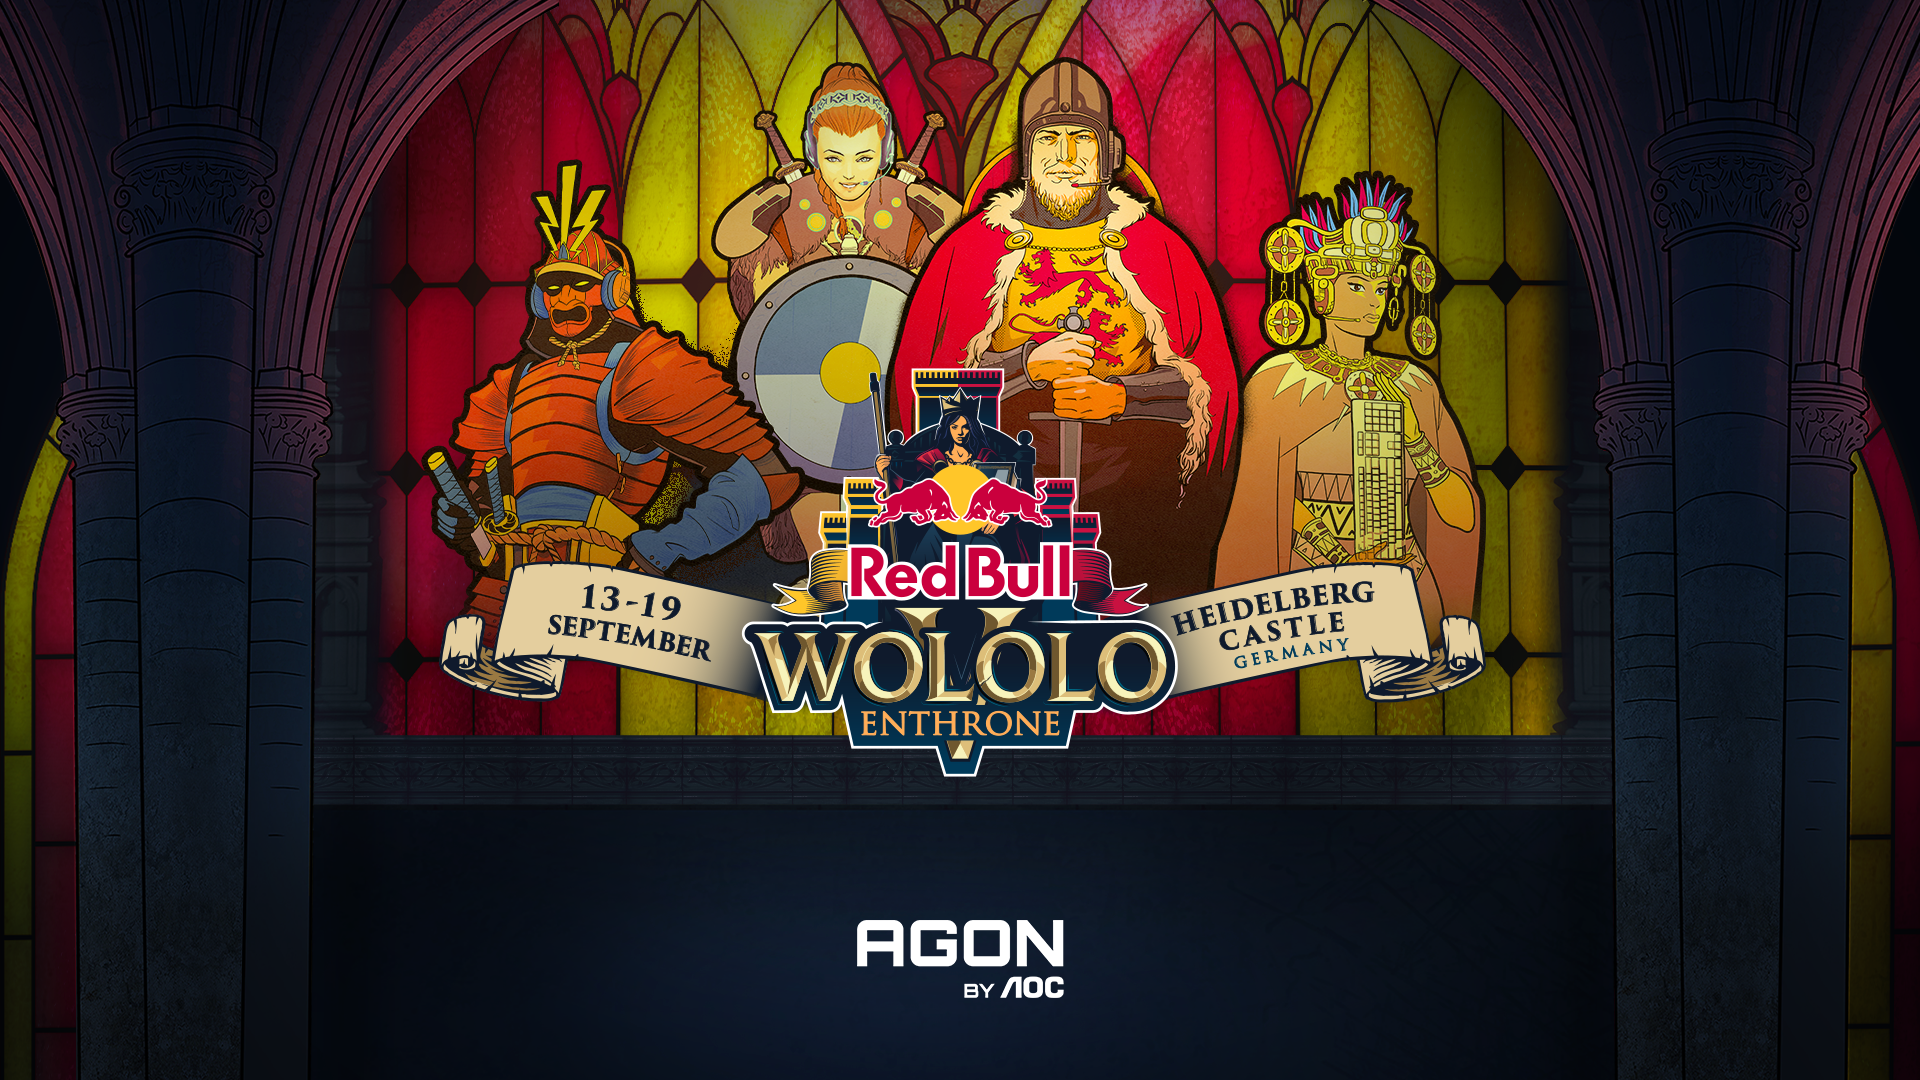 Red Bull WololoV_16x9_SCROLL TEXT INCLUDED.png